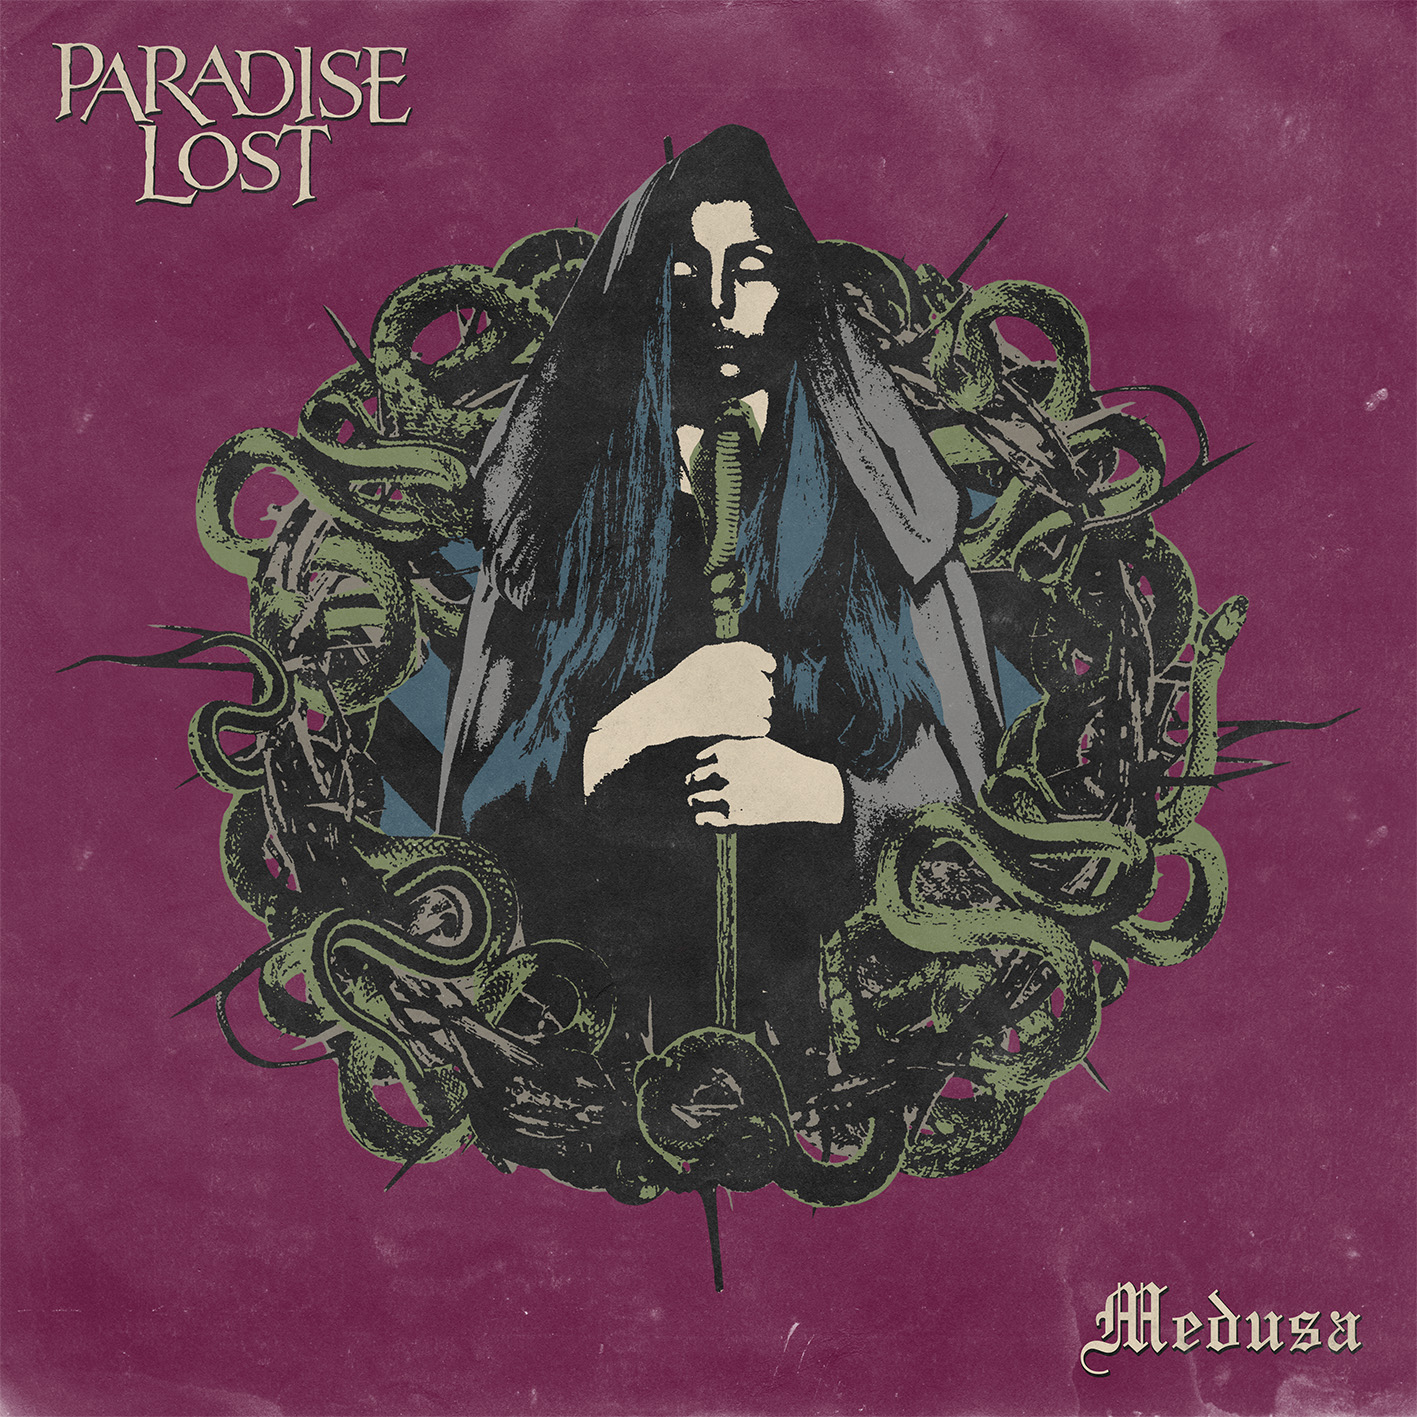 PARADISE LOST UNVEIL COVER AND RELEASE DATE FOR 'MEDUSA'